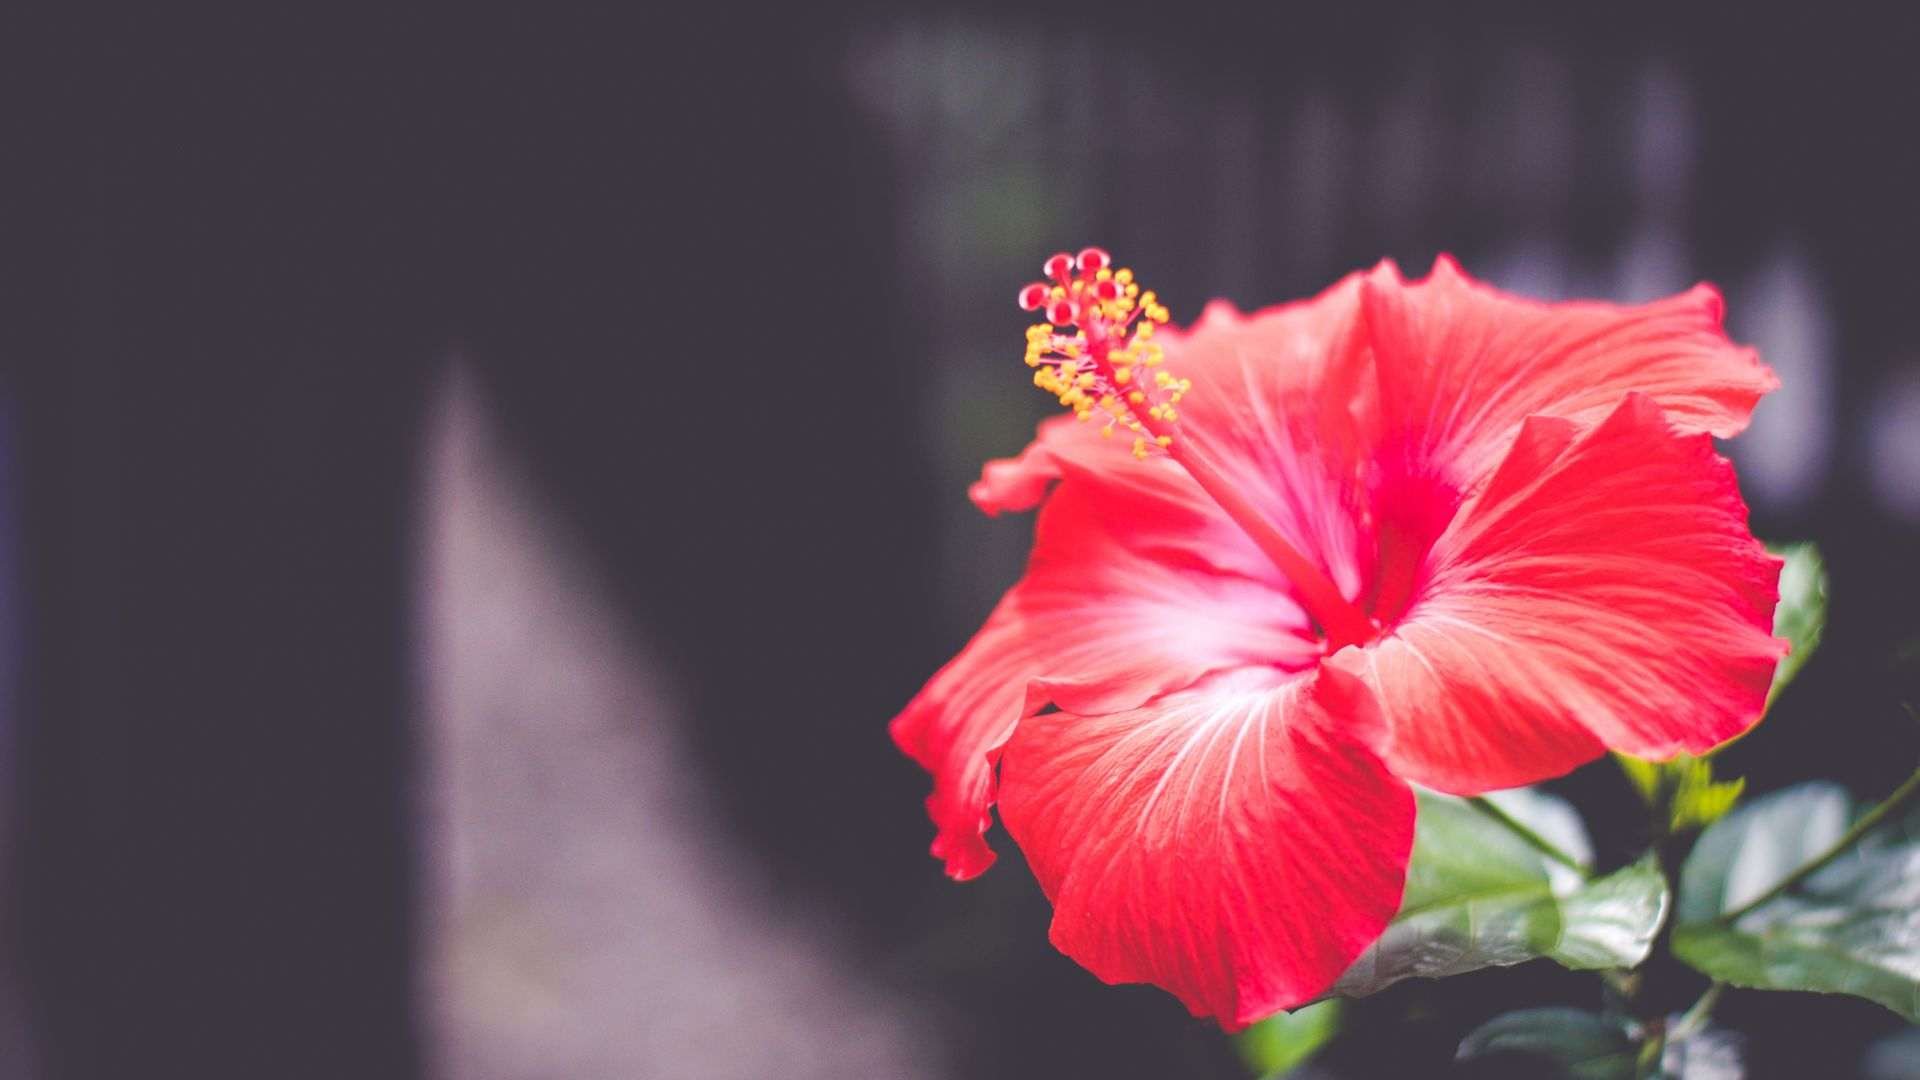 Цветы, 5k, 4k, Гибискус, красный, Flowers, 5k, 4k wallpaper, Hibiscus, red (horizontal)